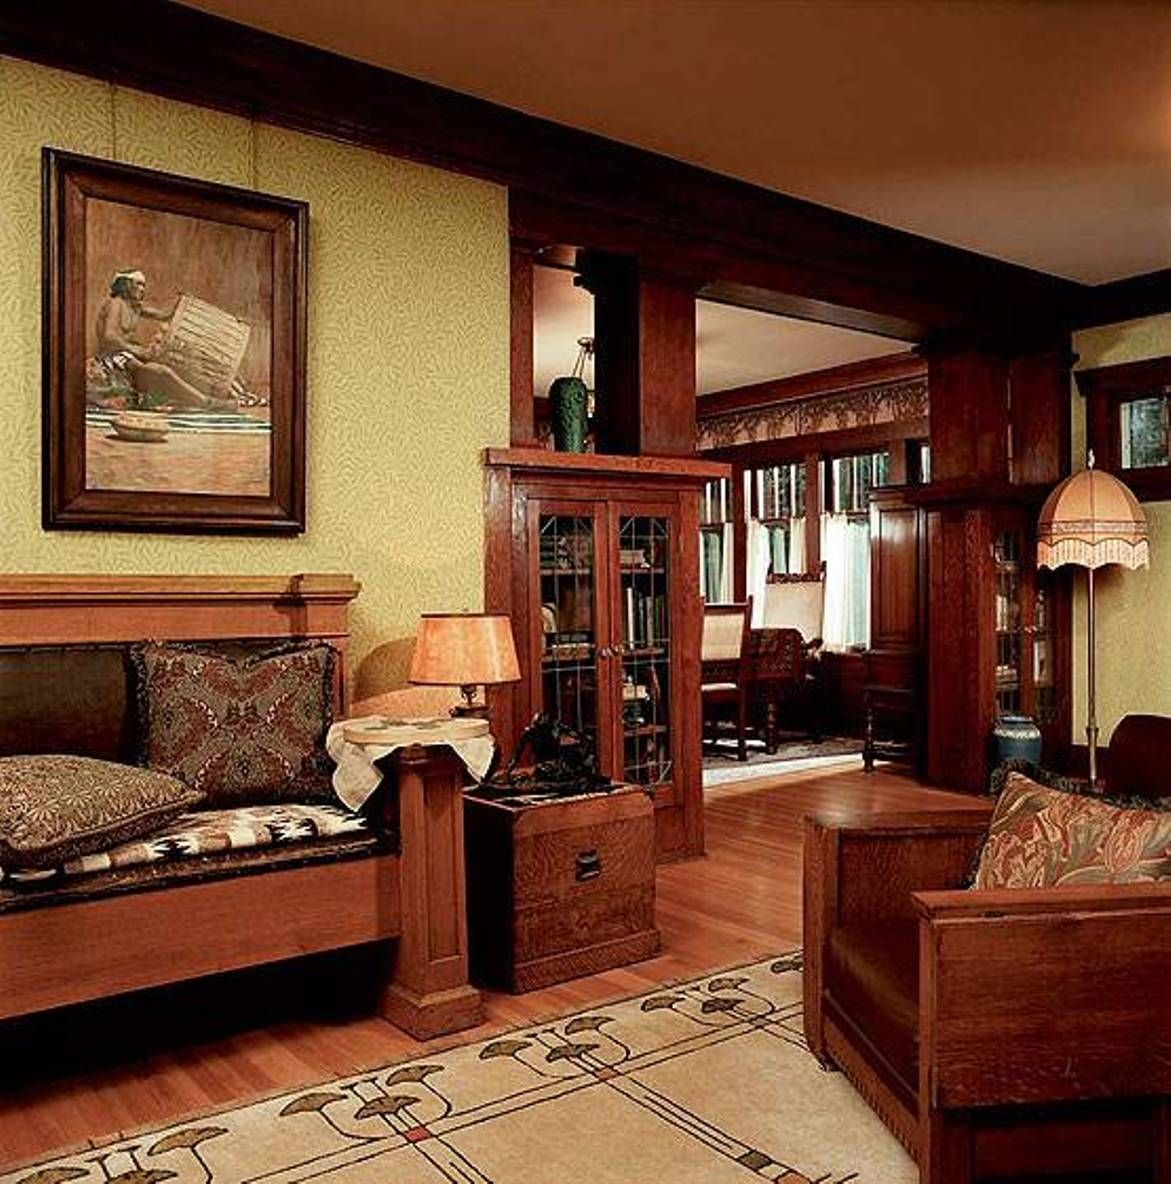 Home design and decor craftsman interior decorating styles craftsman interior decorating - Homes interiors and living ...